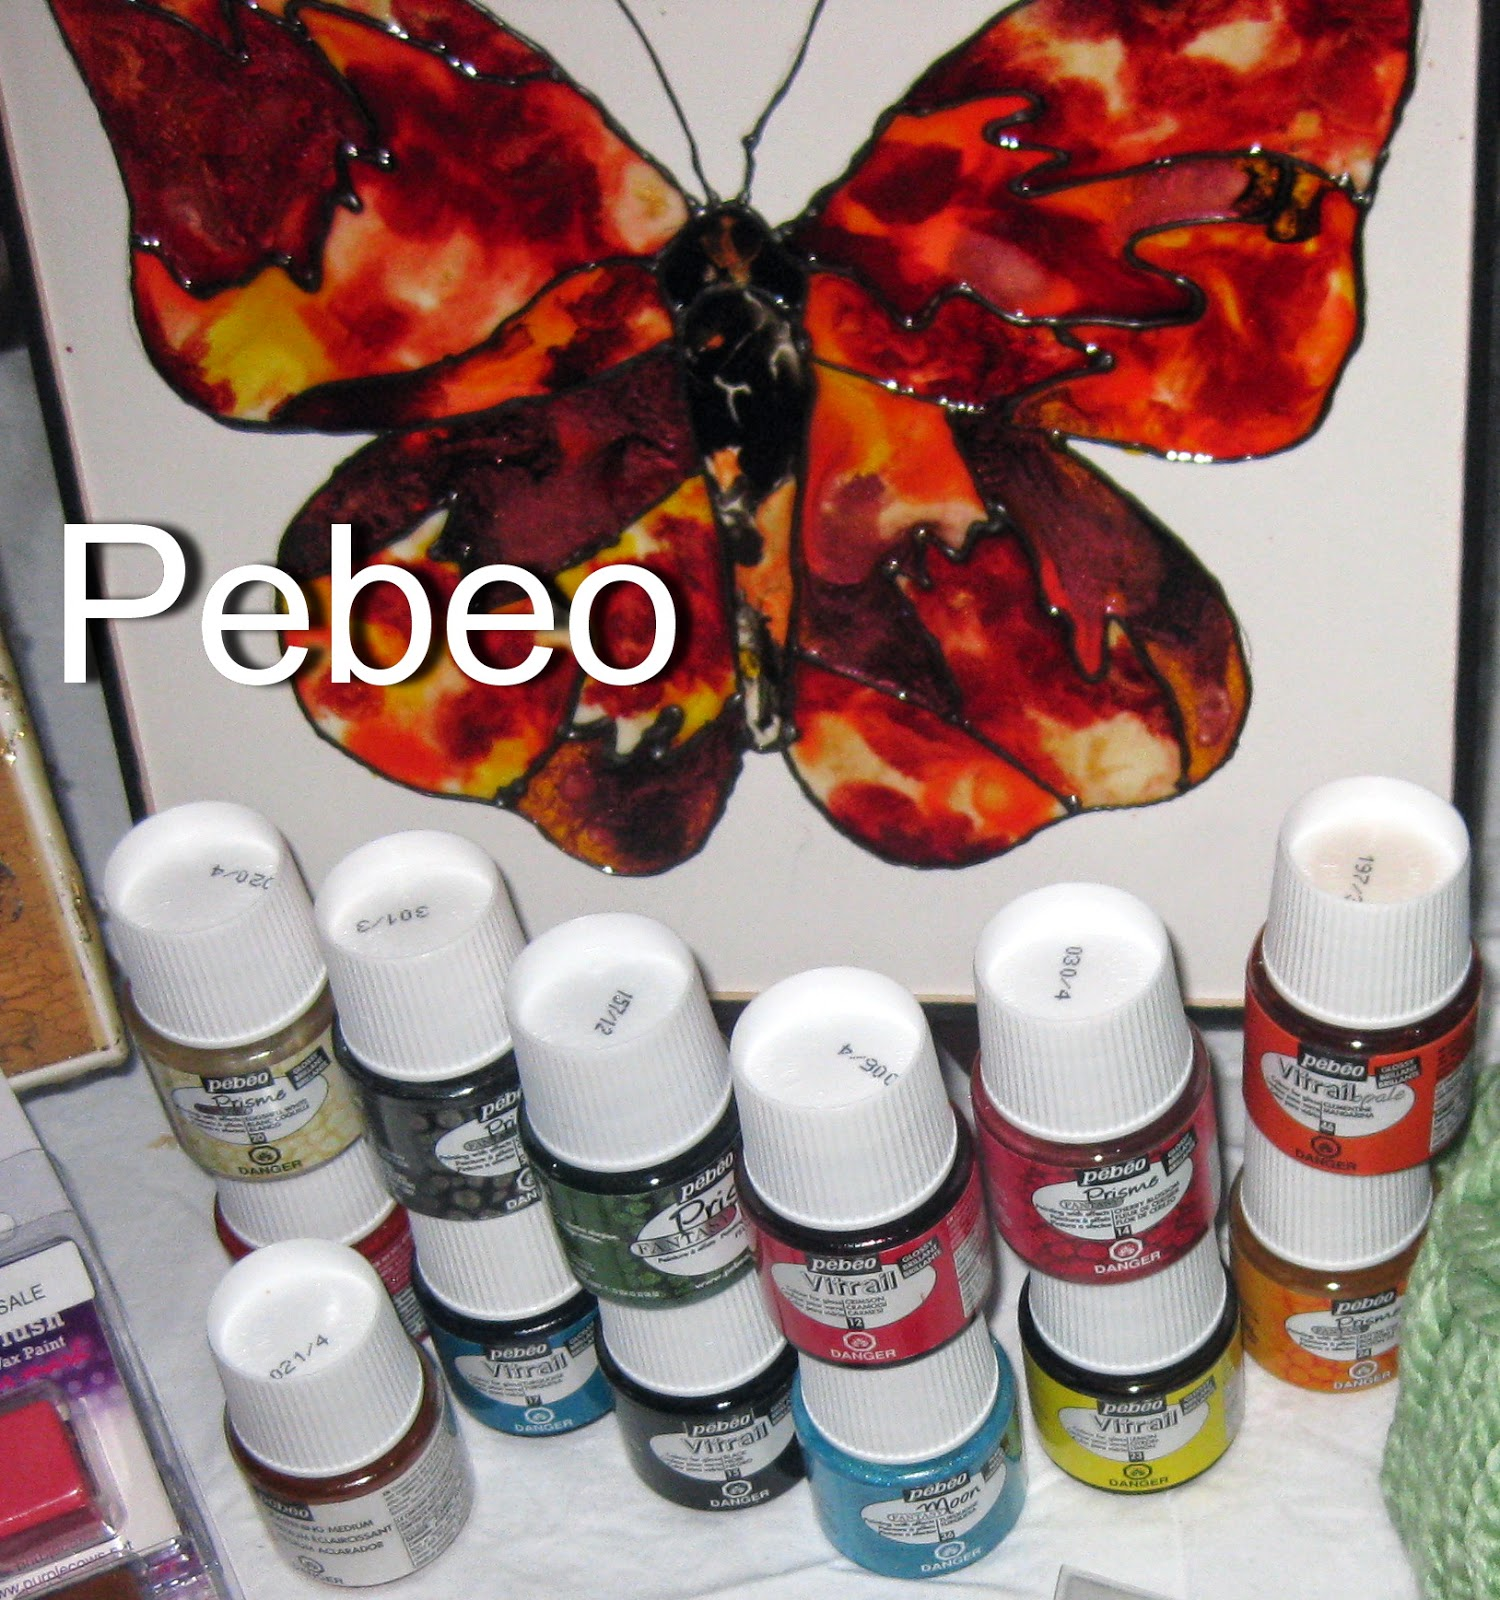 Pebeo paints and canvas